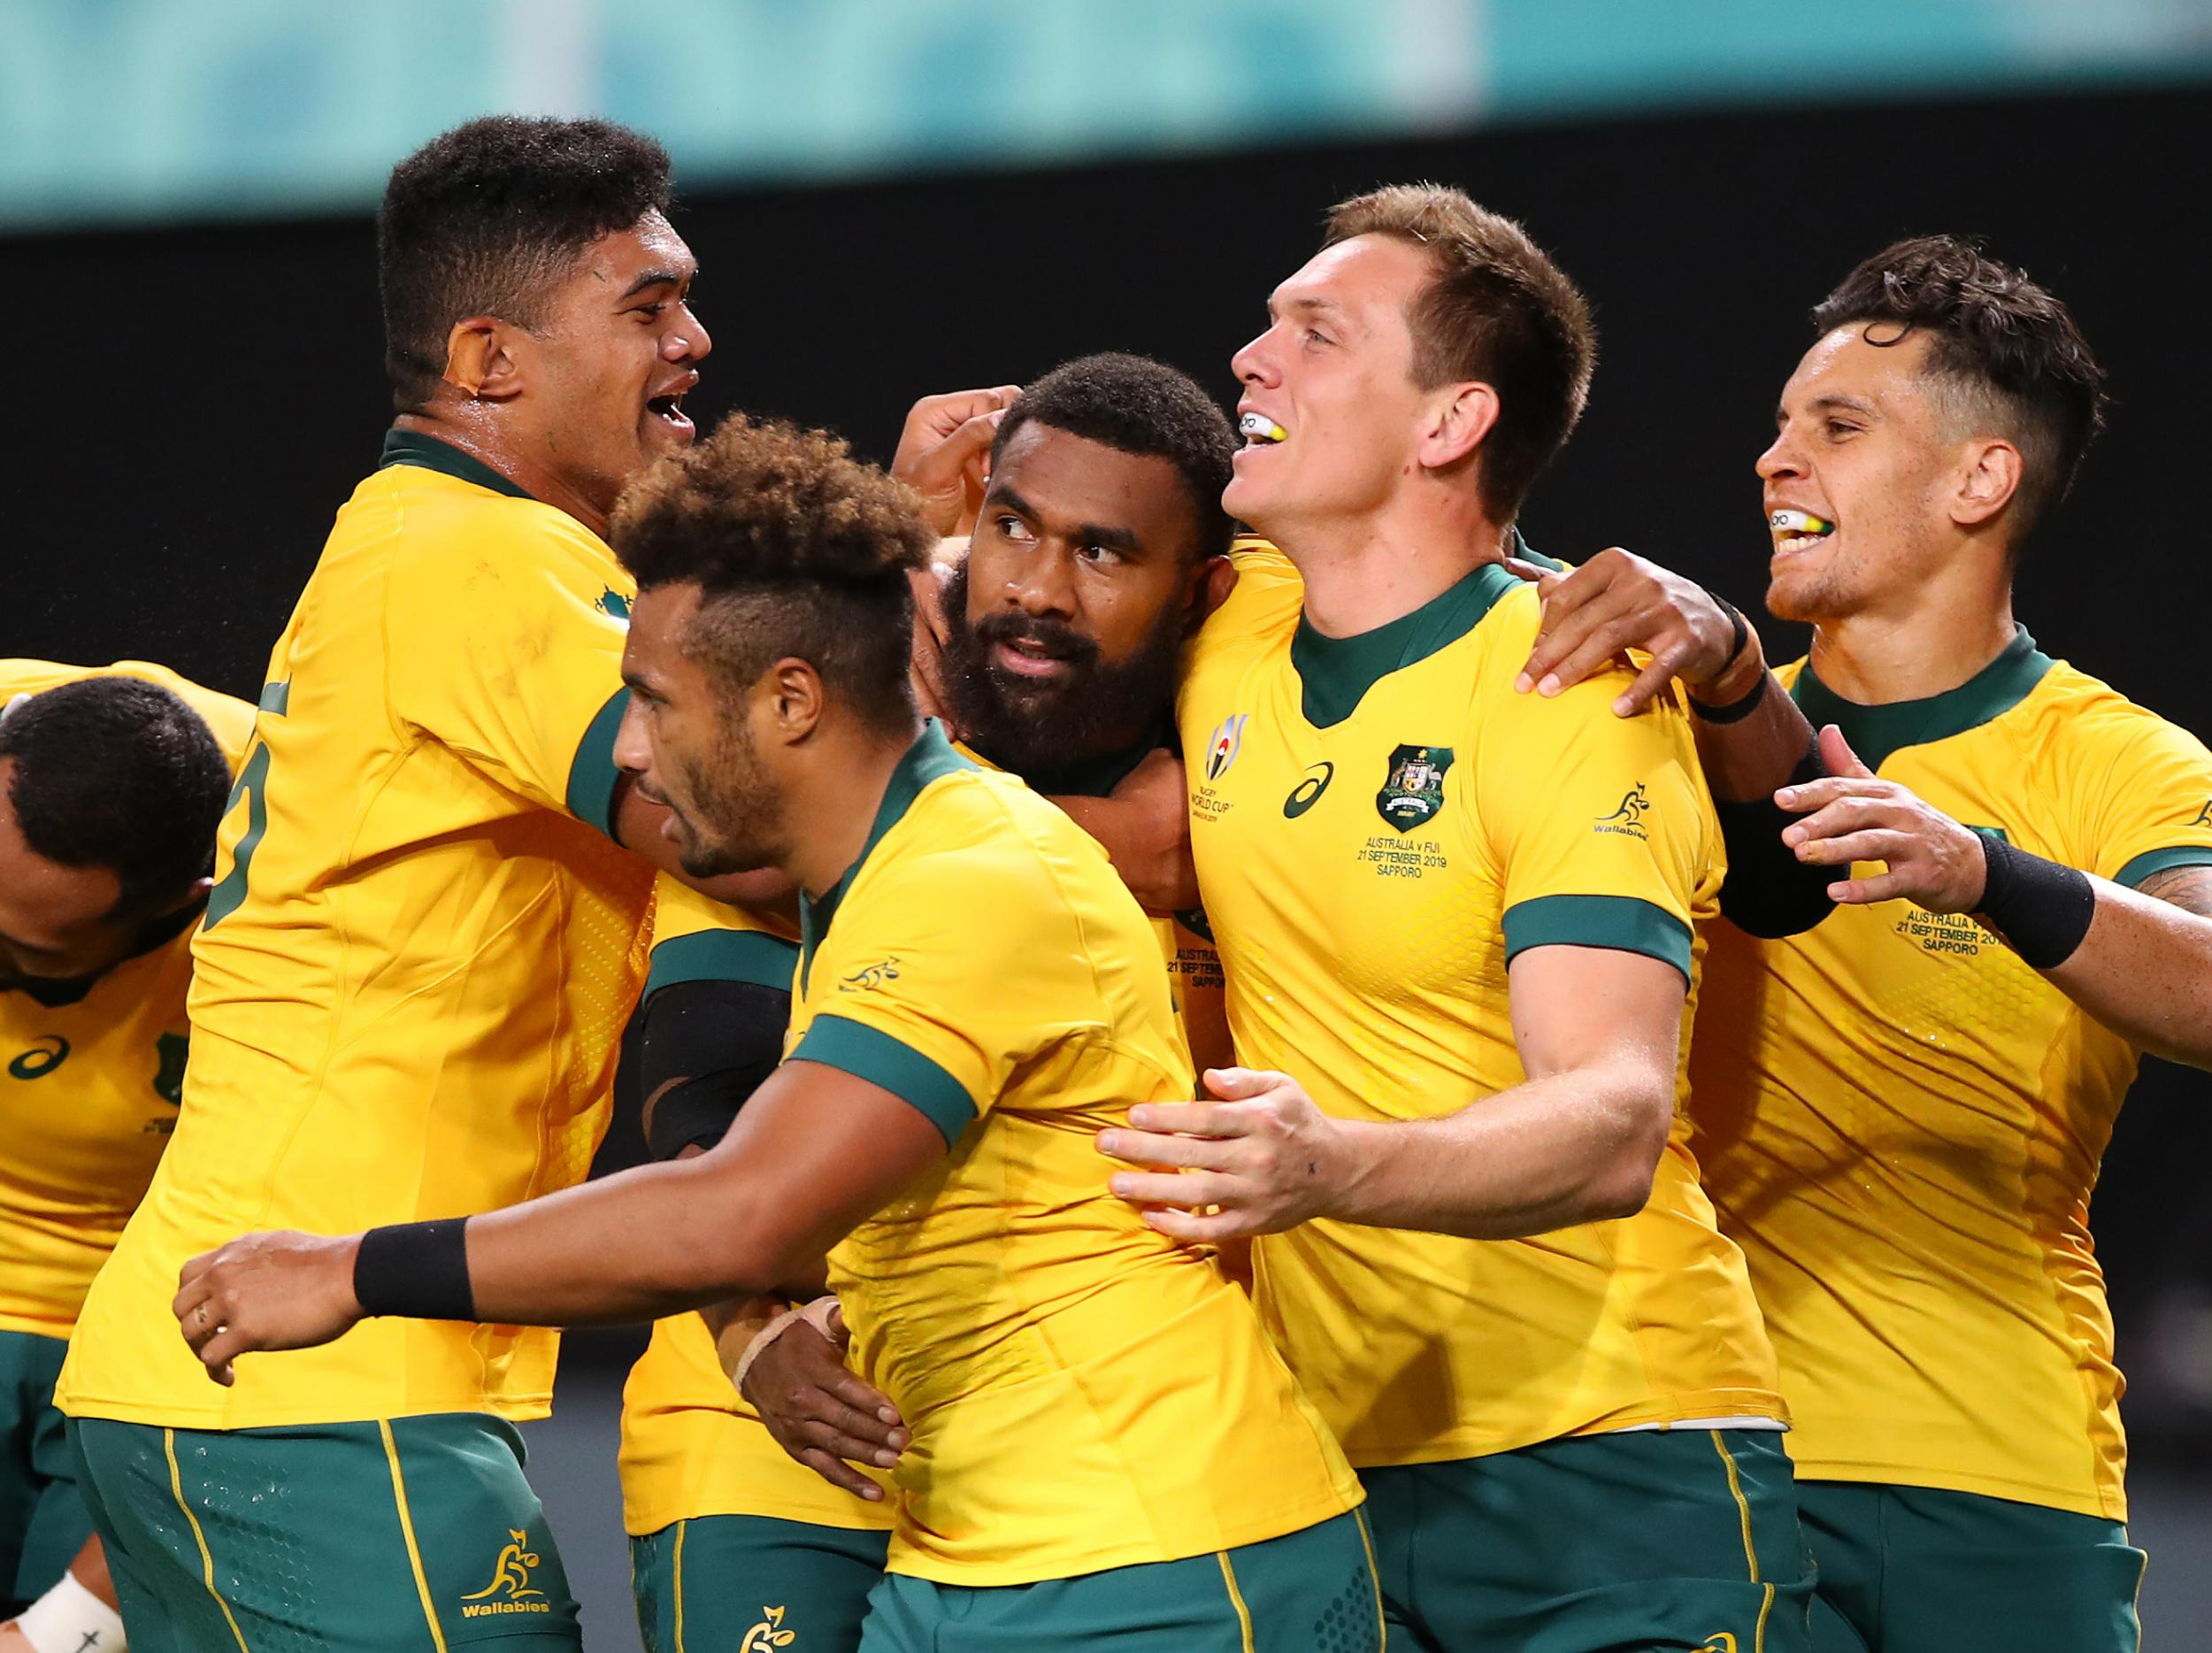 Rugby World Cup 2019 Australia Battle Back To Beat Fiji 39 21 The Independent The Independent